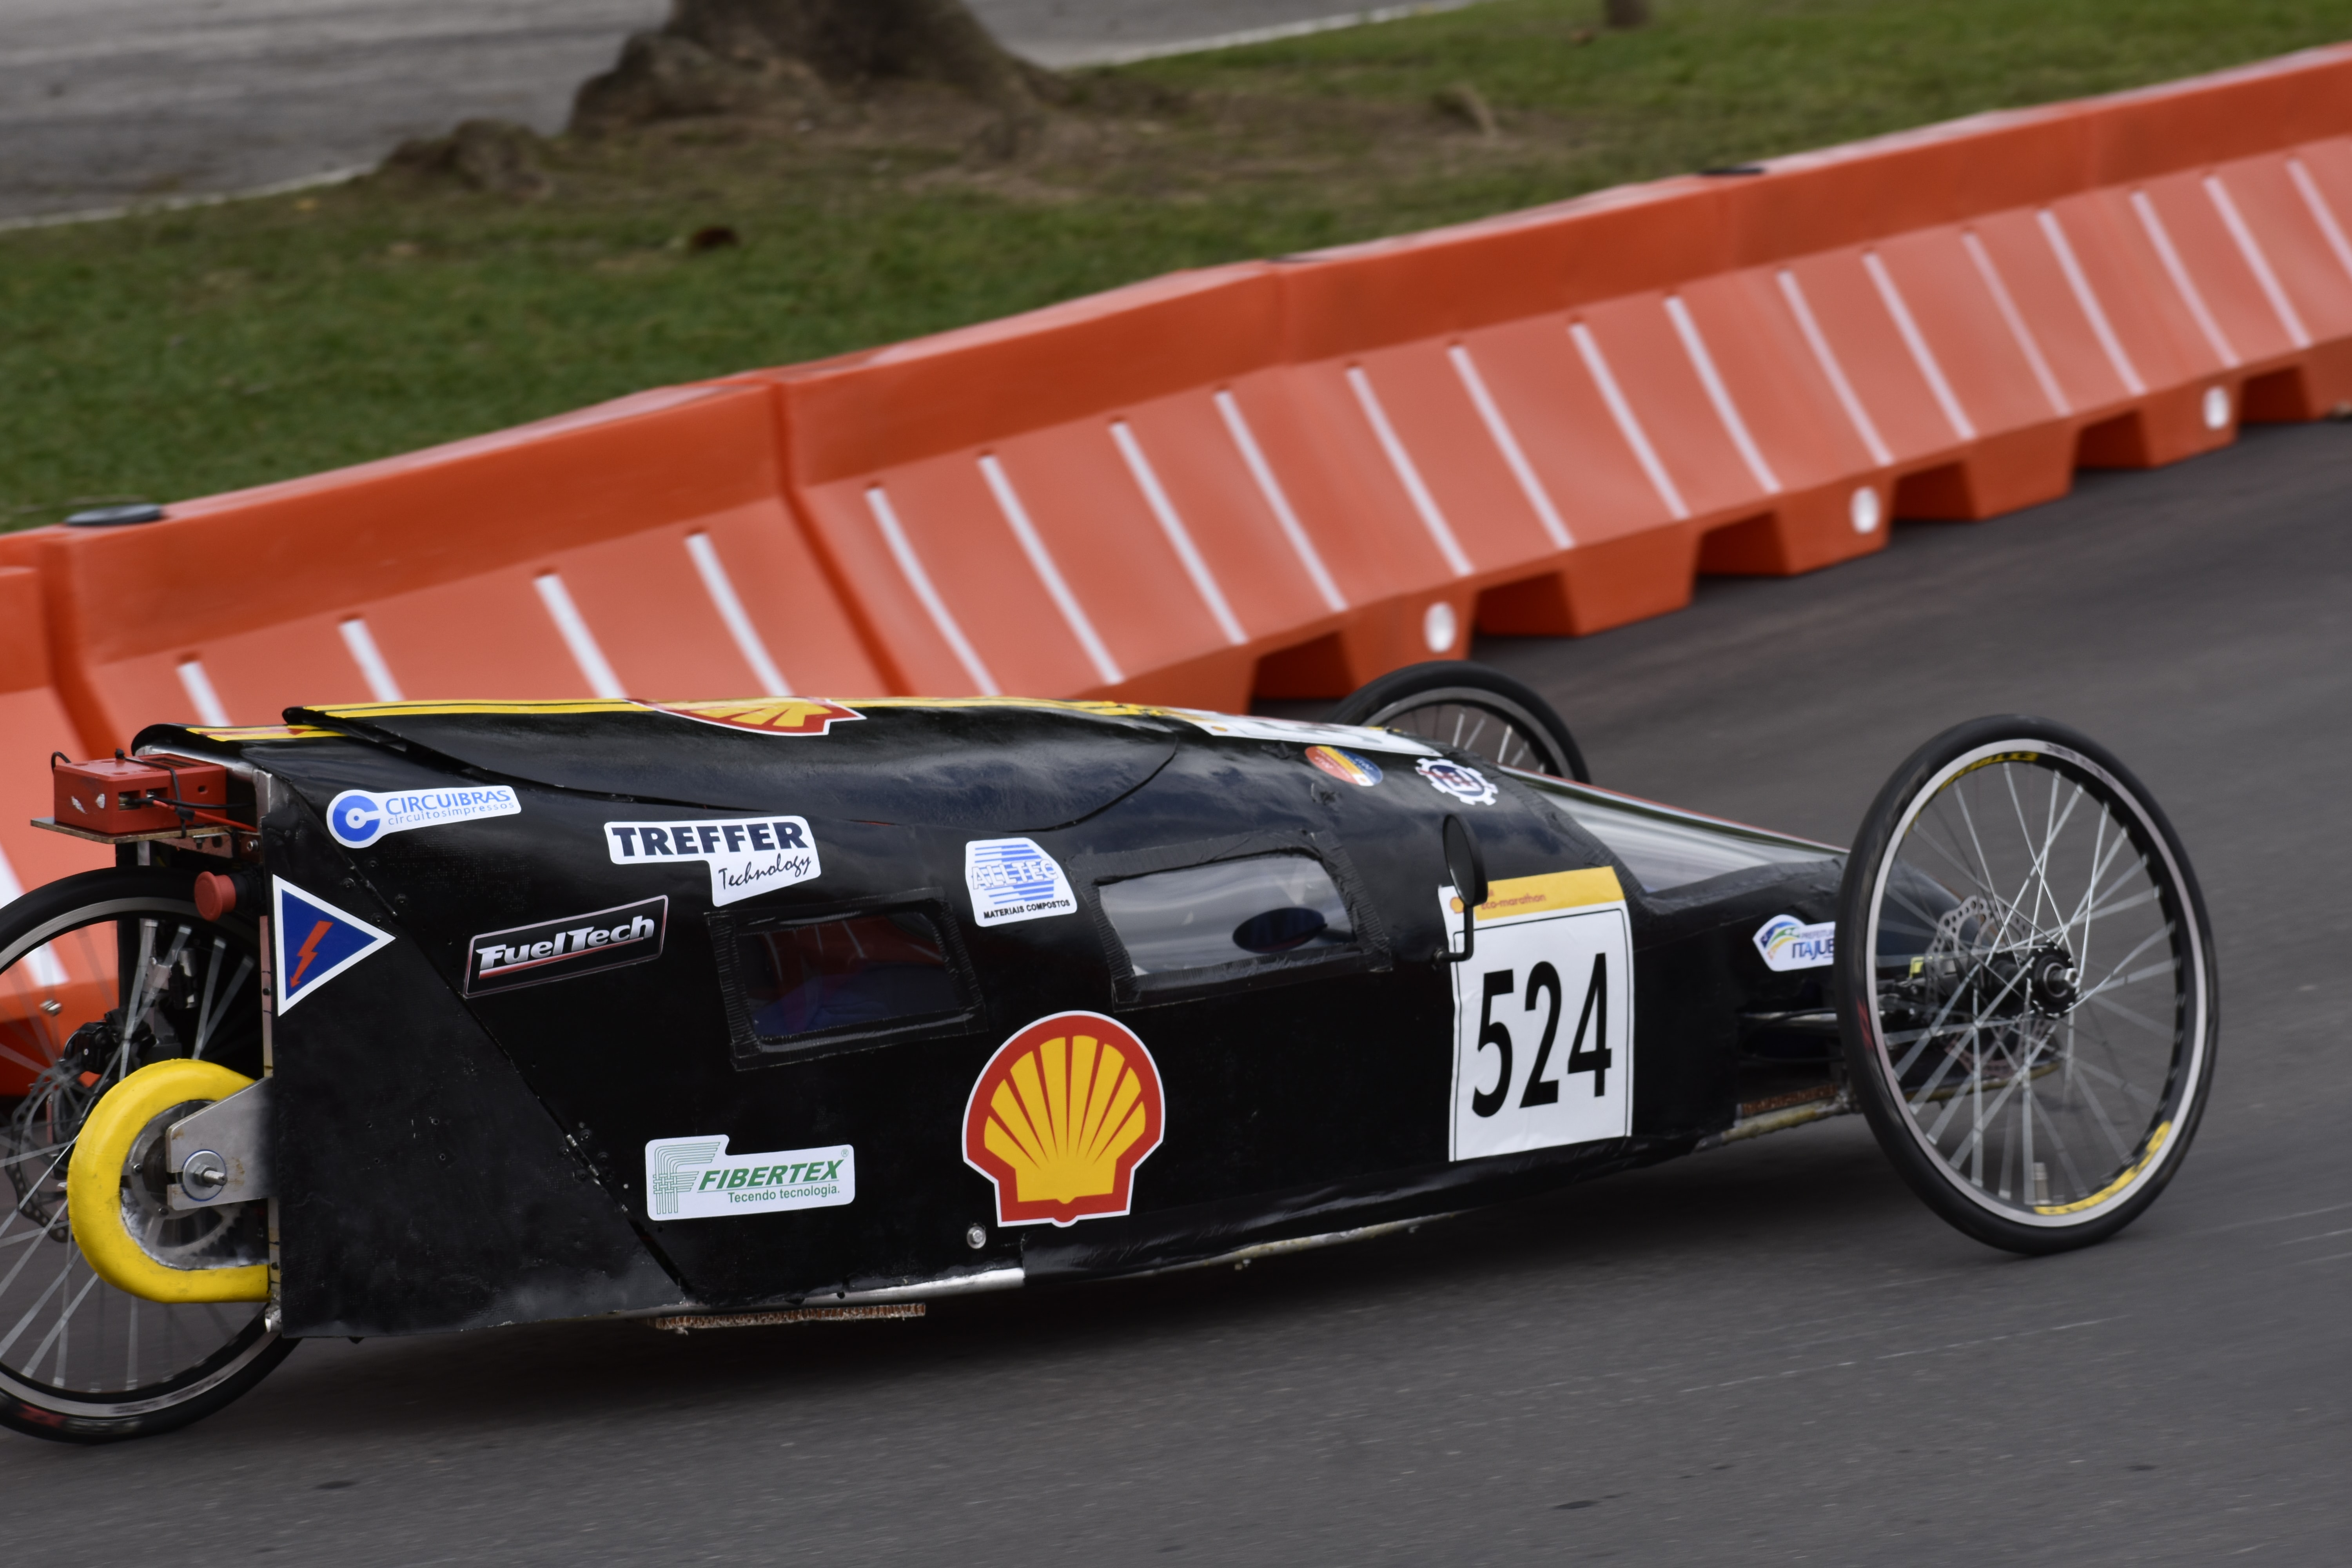 black racing car on track during day time